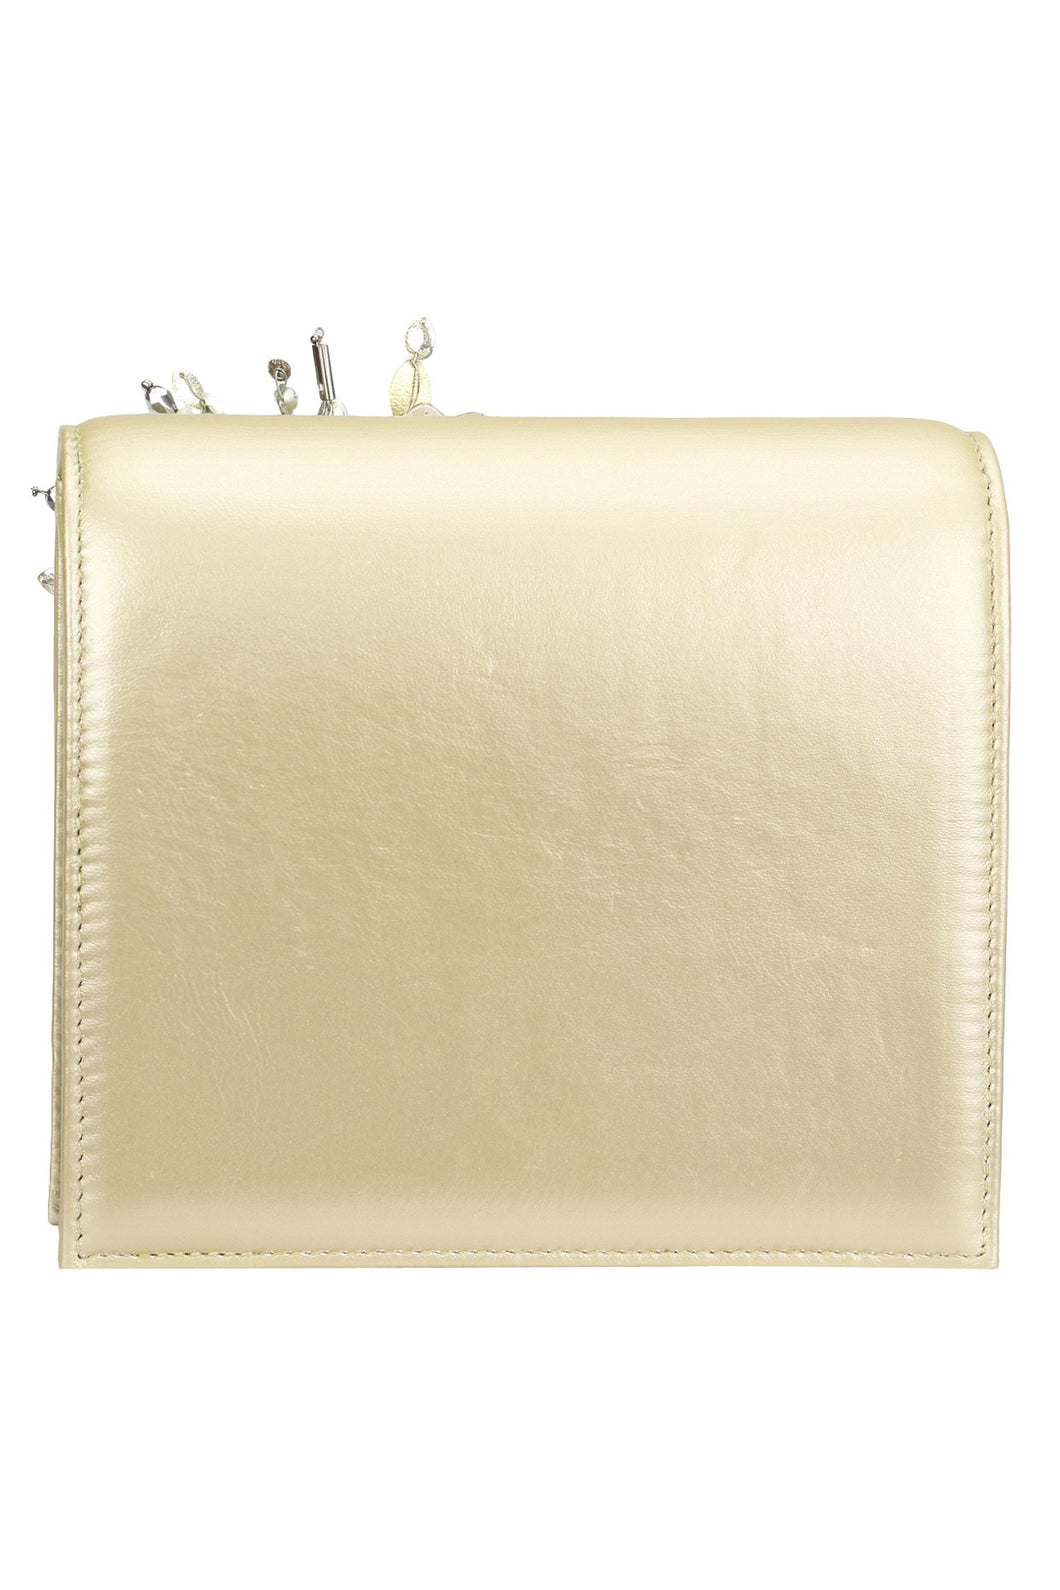 63b5c7483c ... Studio Accessories Beige Crystal and Sequins multicolor floral leather clutch  bag ...